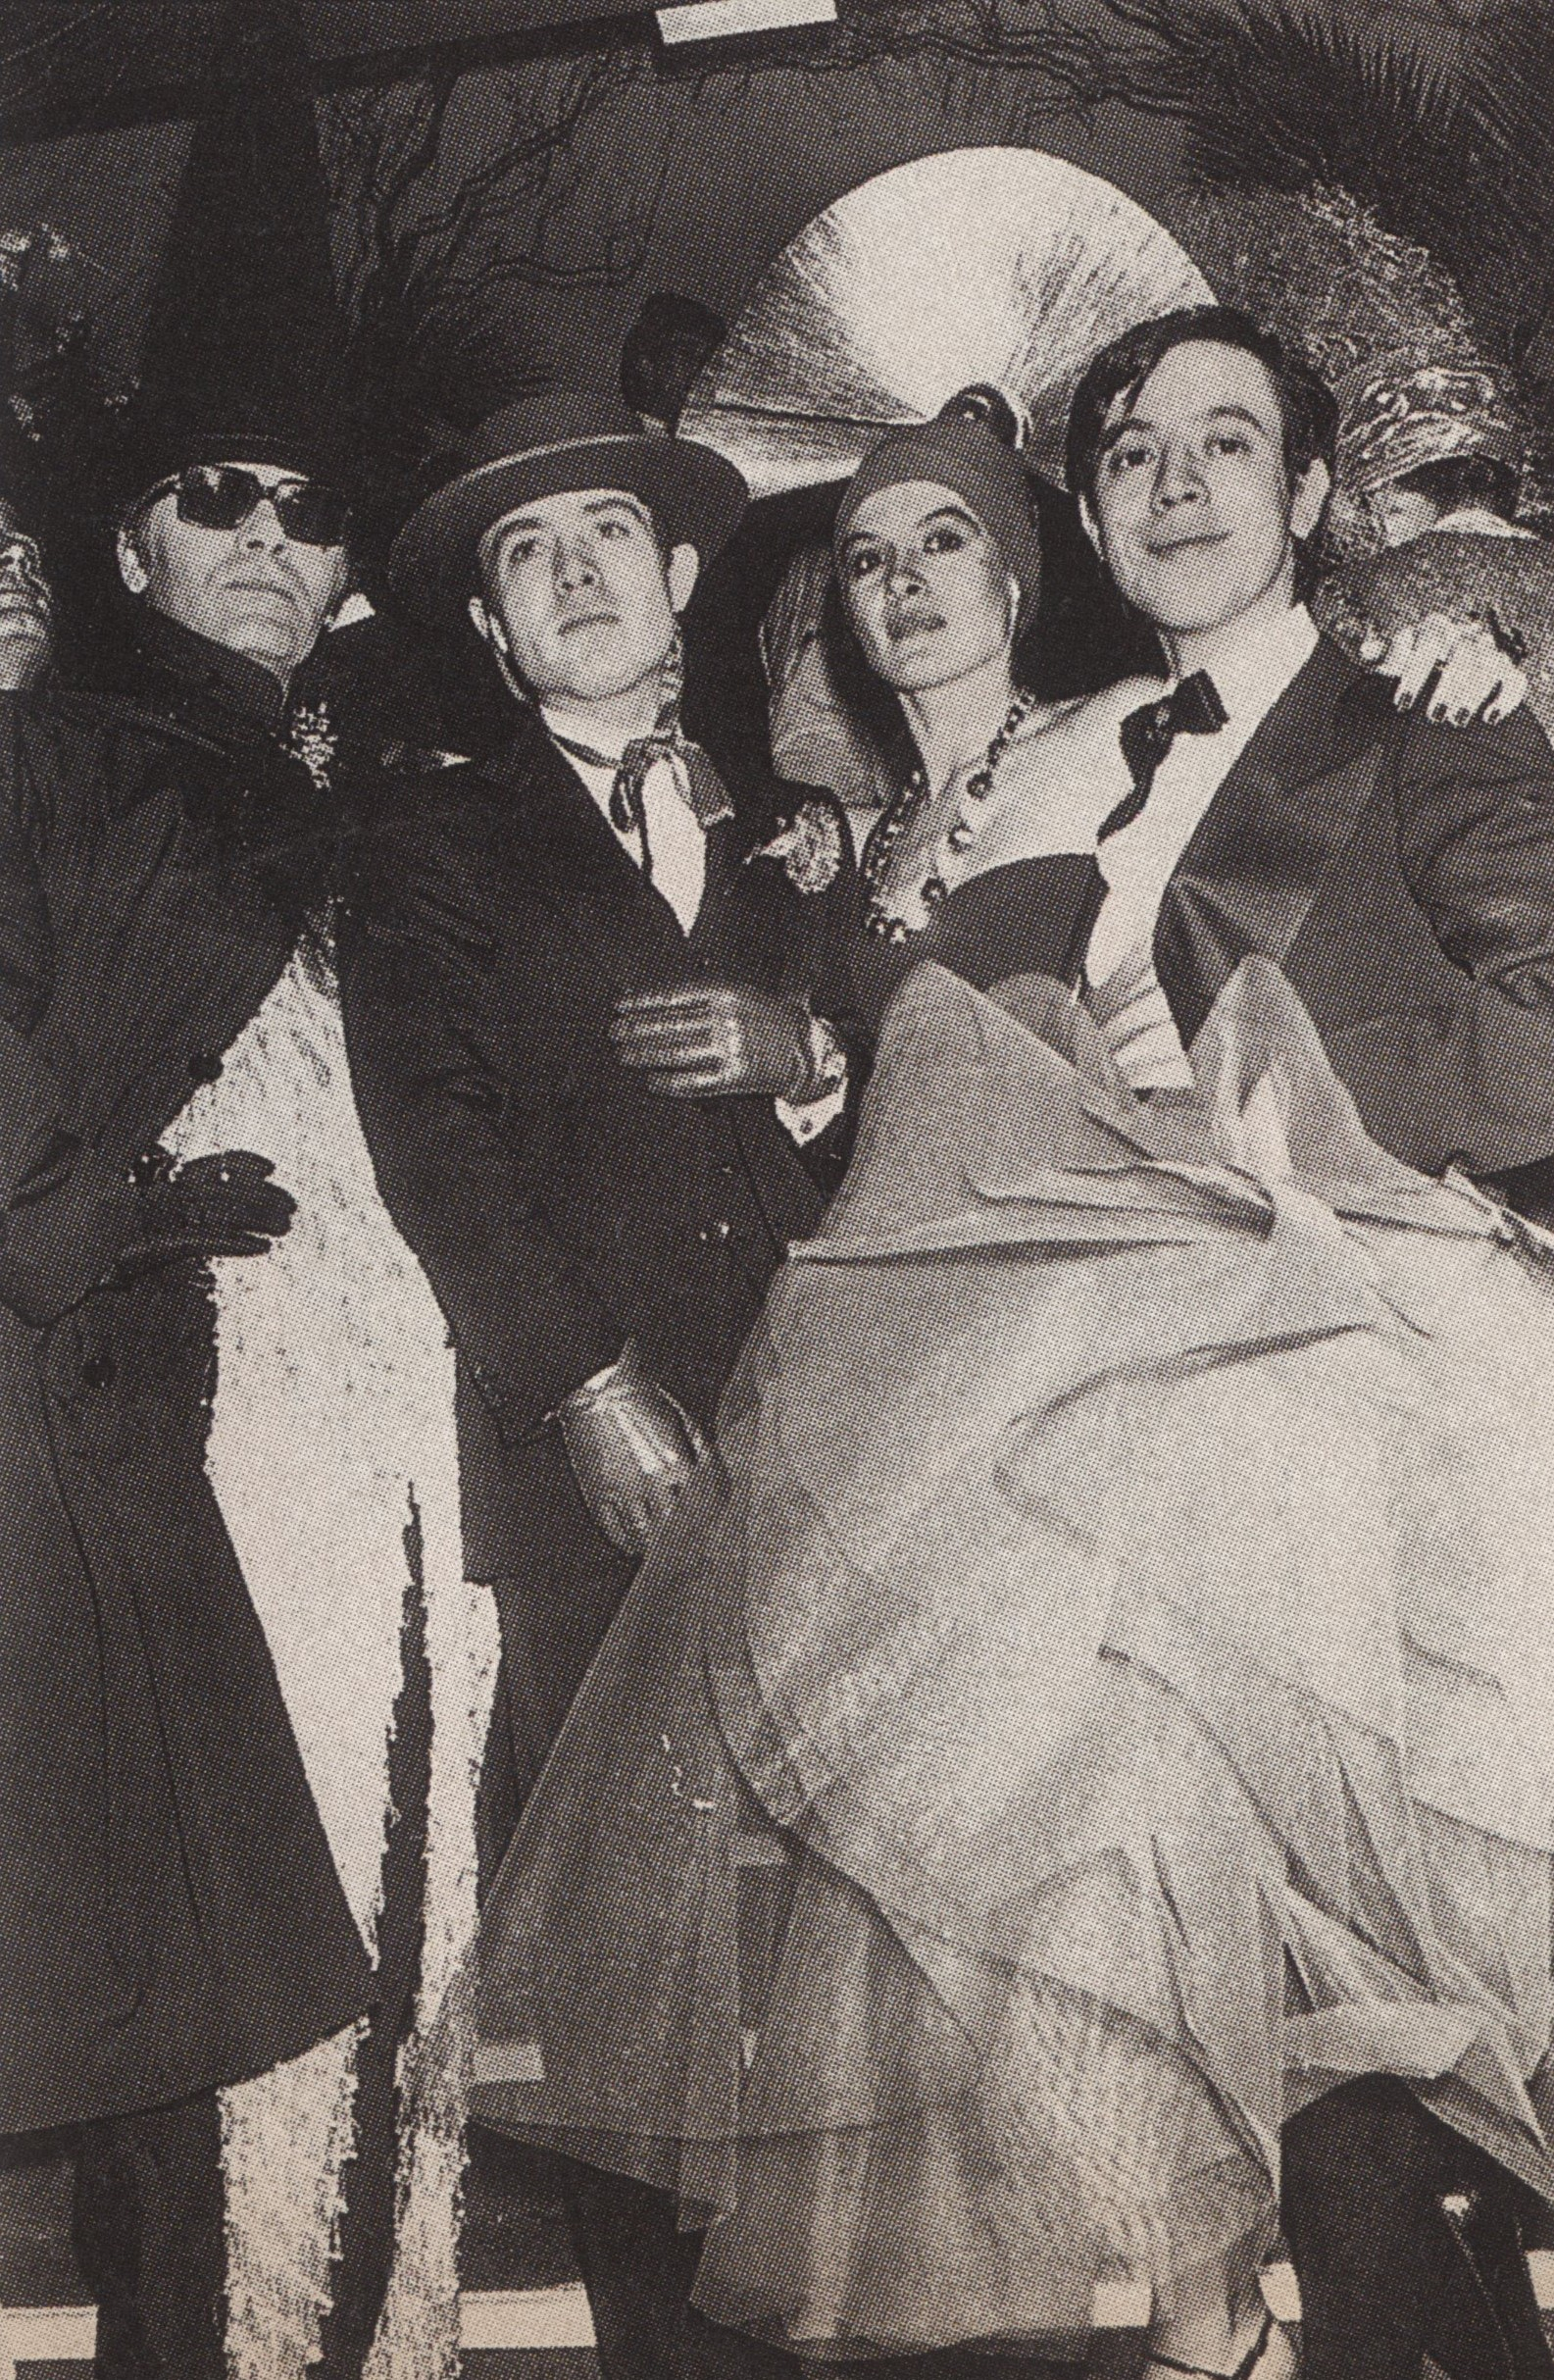 KARL LAGERFELD, RAFAEL LOPEZ-SANCHEZ, PALOMA PICASSO AND JAVIER ARRUYELO AT LOULOU KLOSSOWSKI'S MAGIC CITY BALL PARIS 1978 W OCTOBER 1999